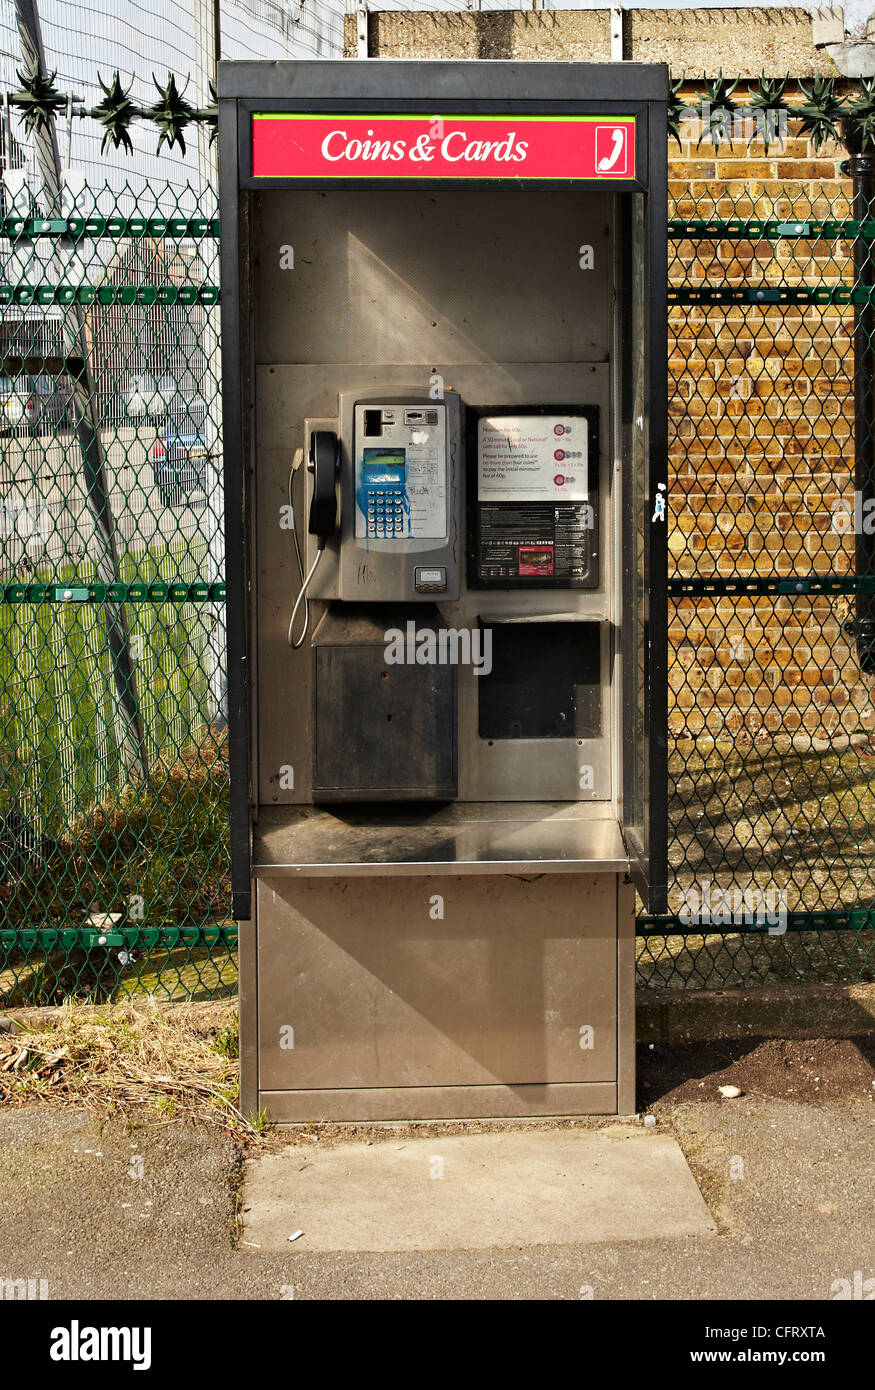 Open Style BT telephone box that takes coins and cards - Stock Image